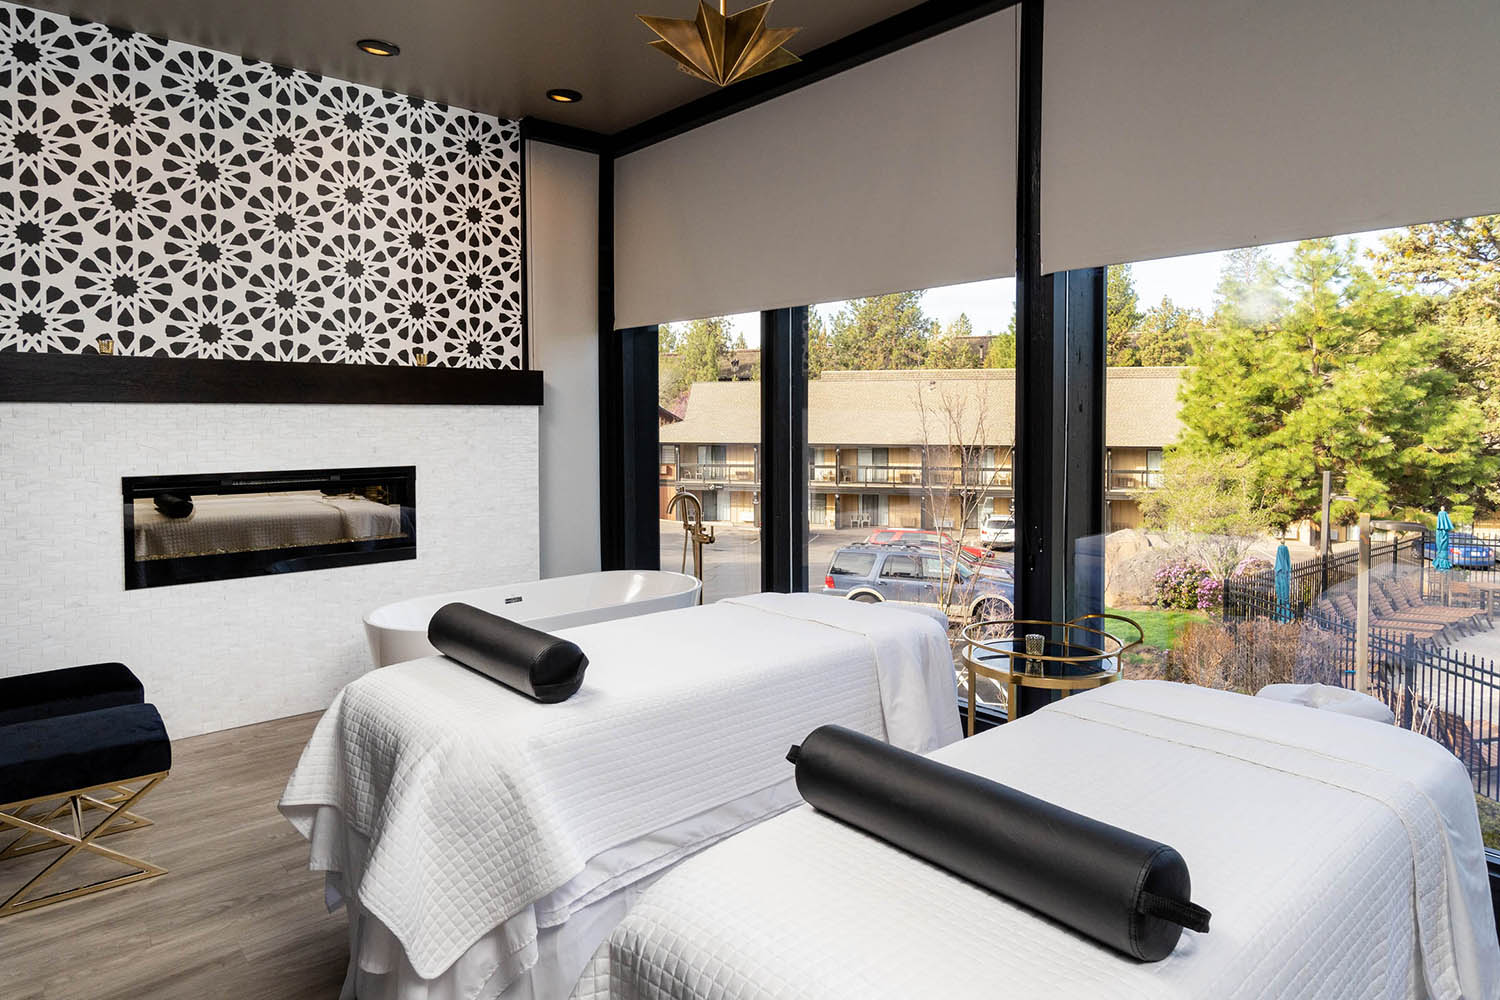 Couples' treatment room overlooking the pool.